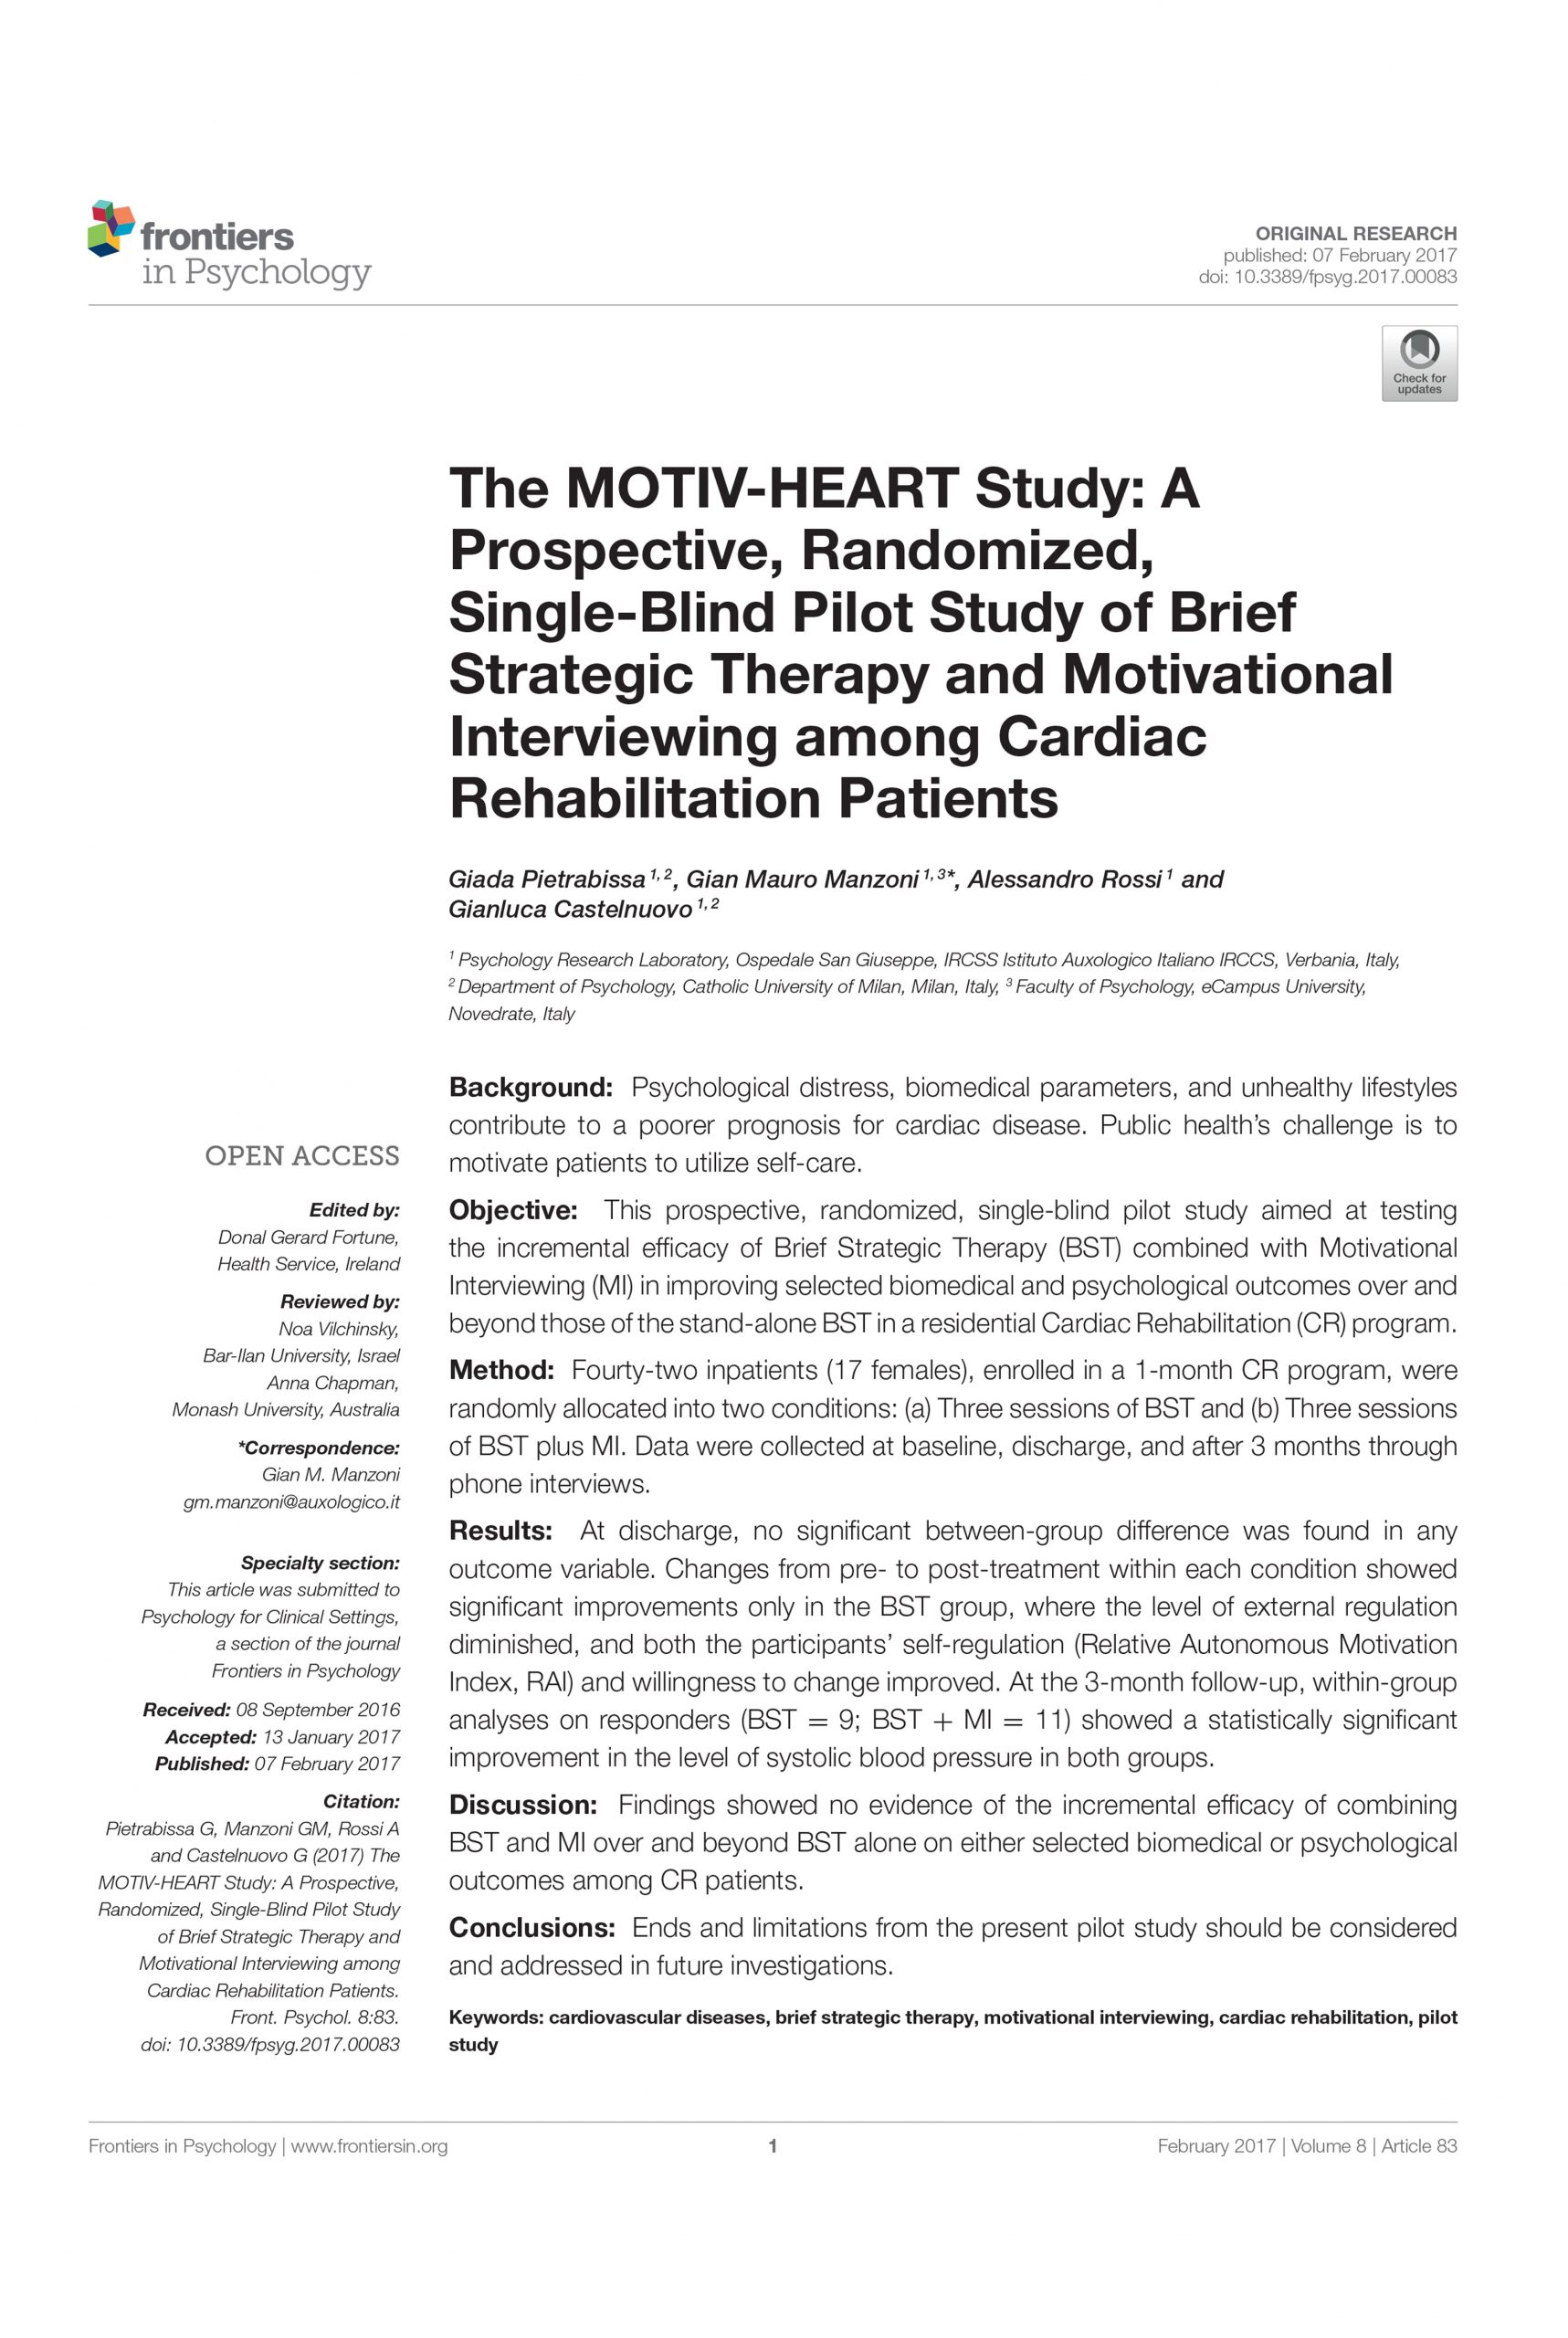 Brief Strategic Therapy and Motivational Interviewing